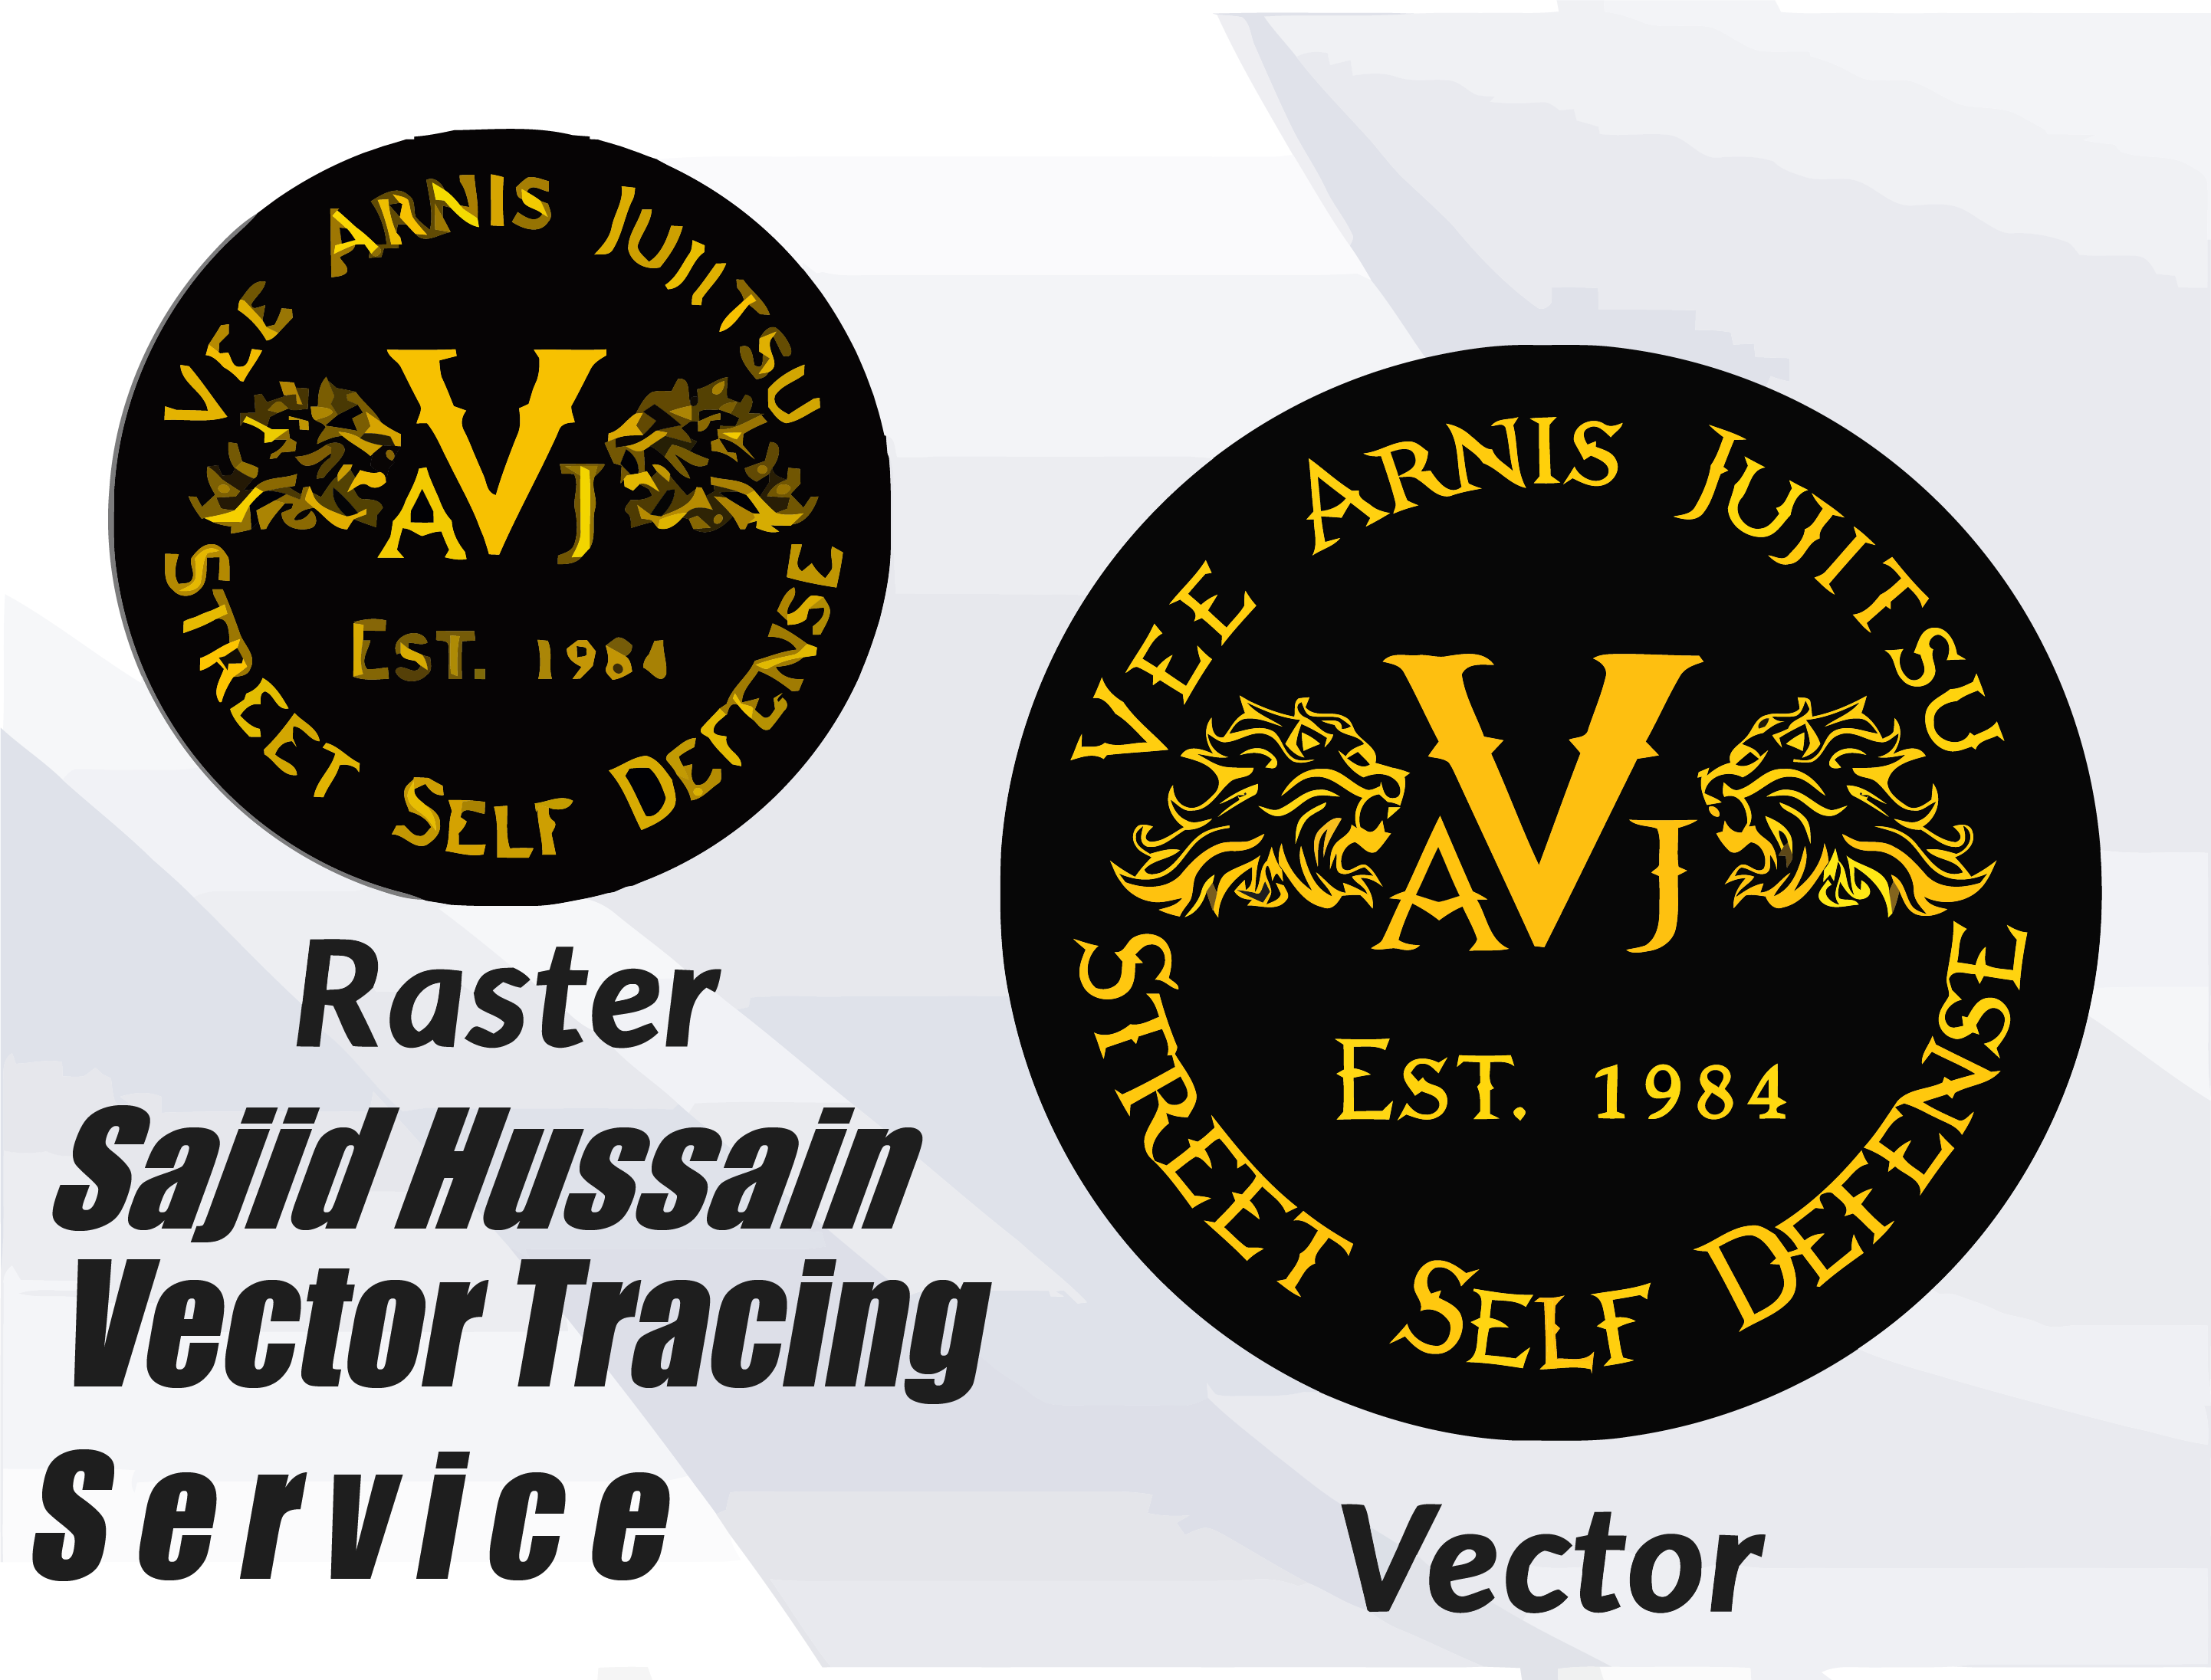 redraw your existing logo image as high resolution vector